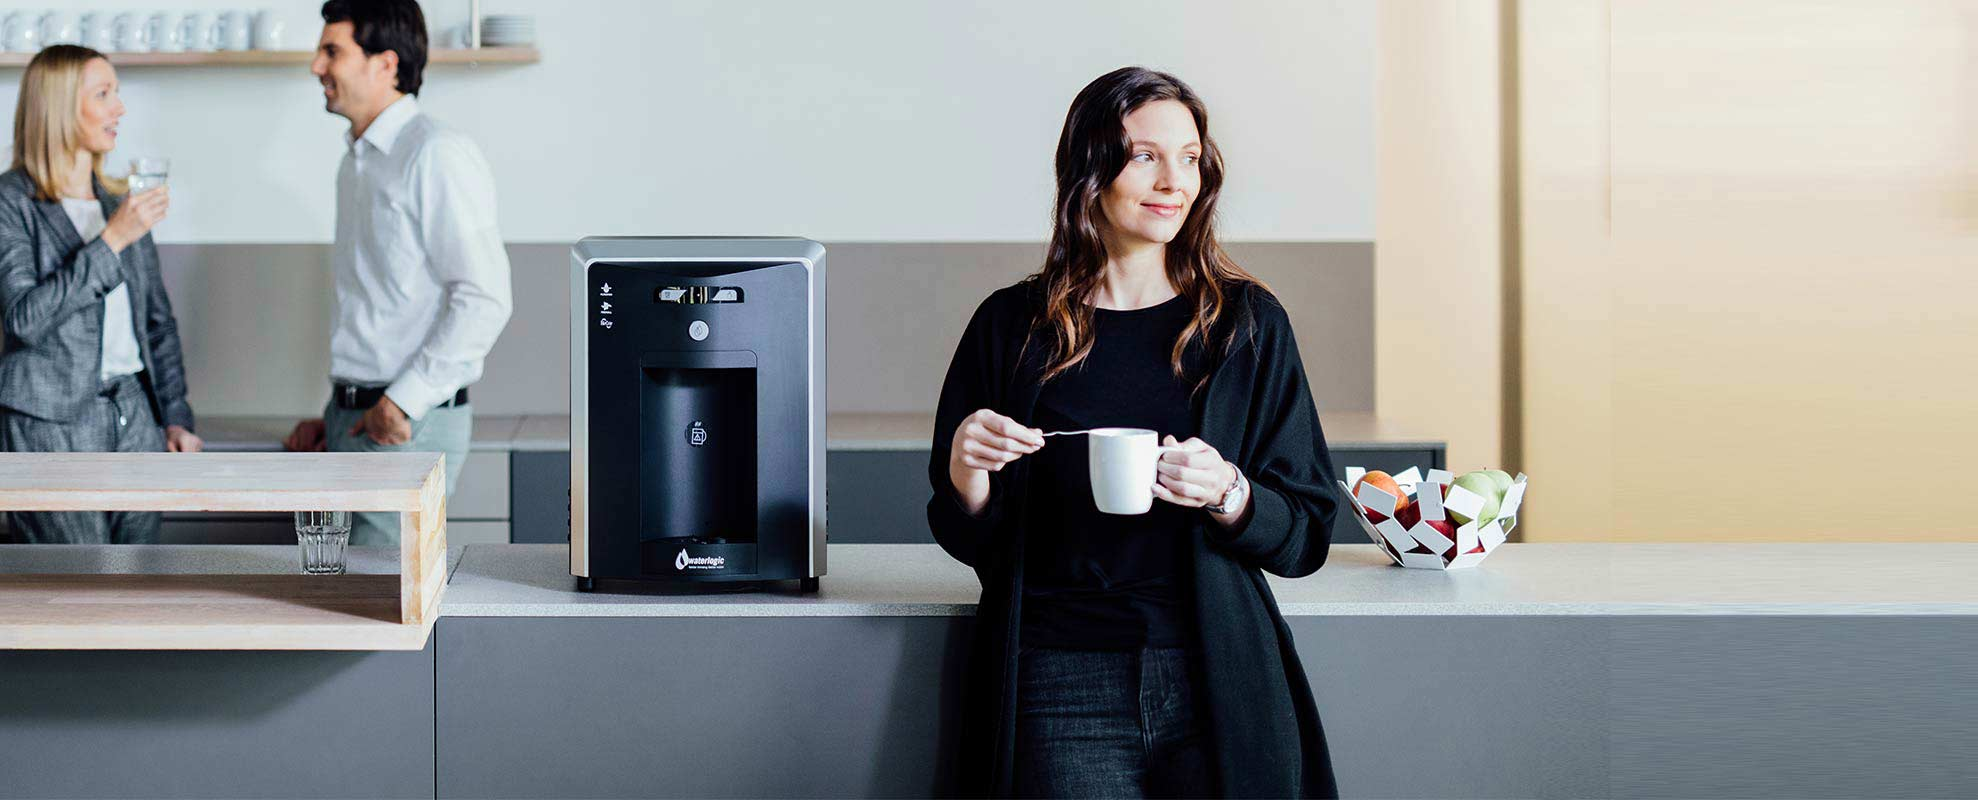 lady drinking a cup of tea standing next to a bottle less watercooler